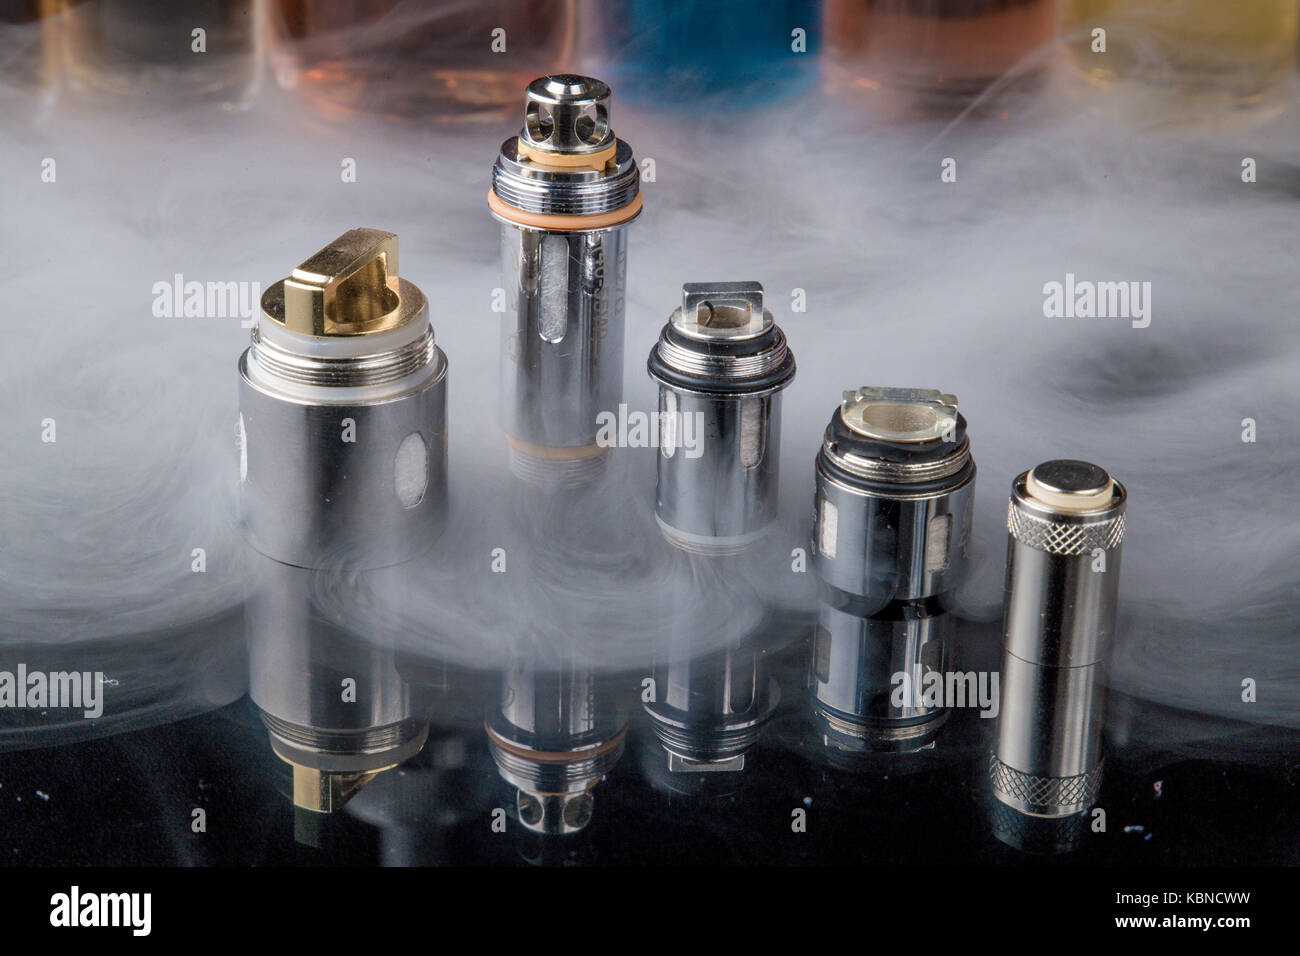 Electronic cigarette Clearomizer coils in smoke cloud Stock Photo